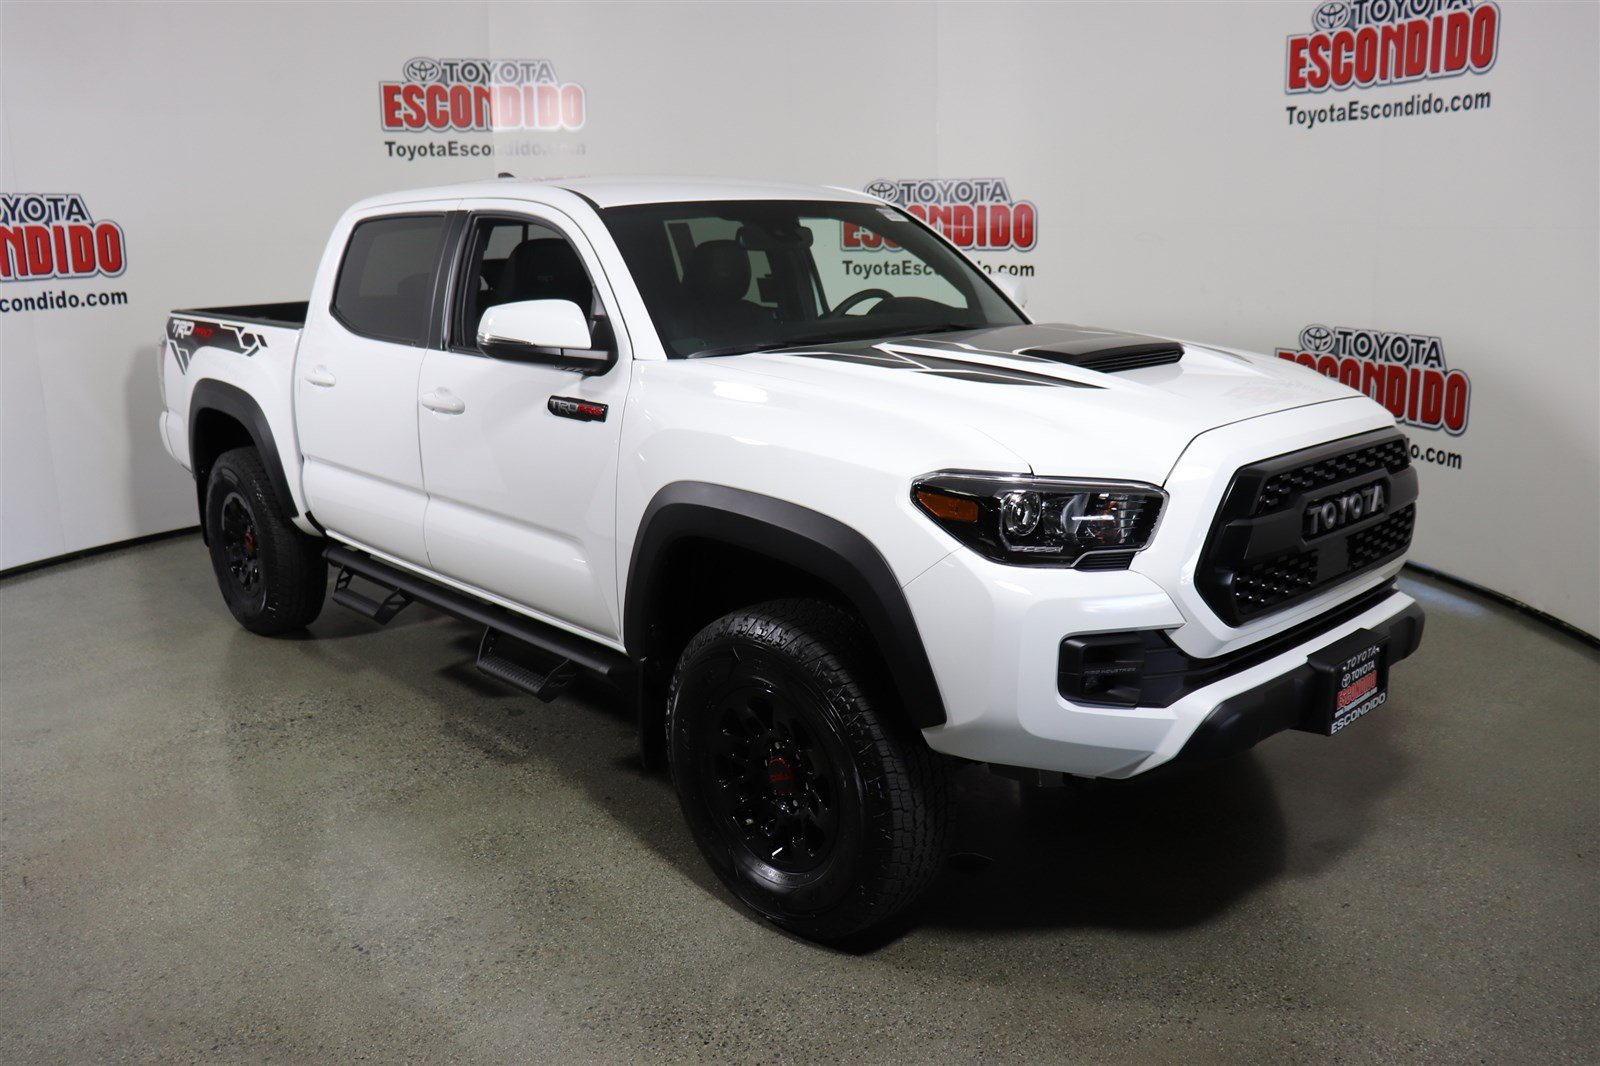 new 2018 toyota tacoma trd pro double cab pickup in escondido 1019208 toyota escondido. Black Bedroom Furniture Sets. Home Design Ideas